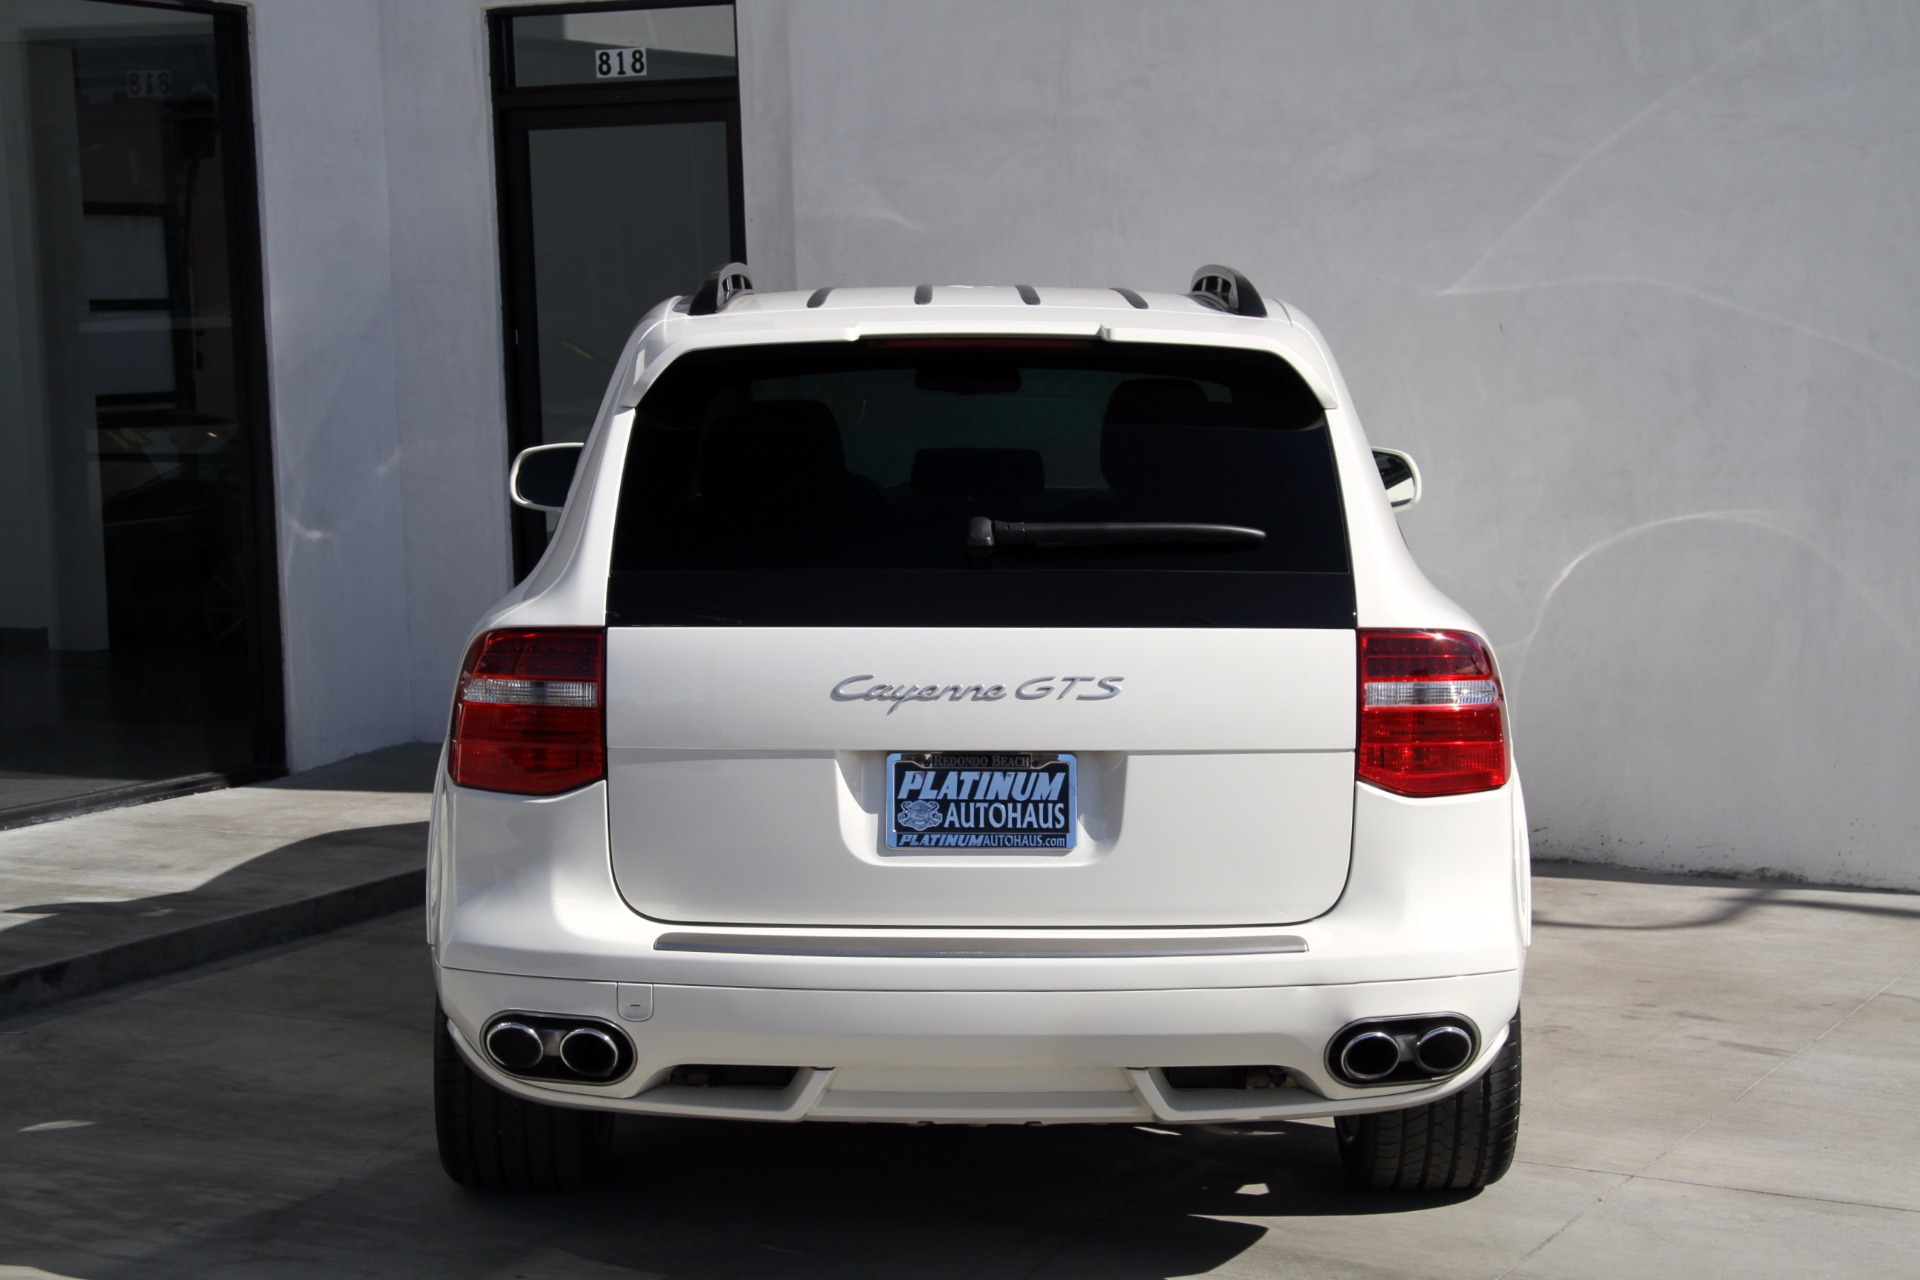 2009 Porsche Cayenne Gts Stock 6024 For Sale Near